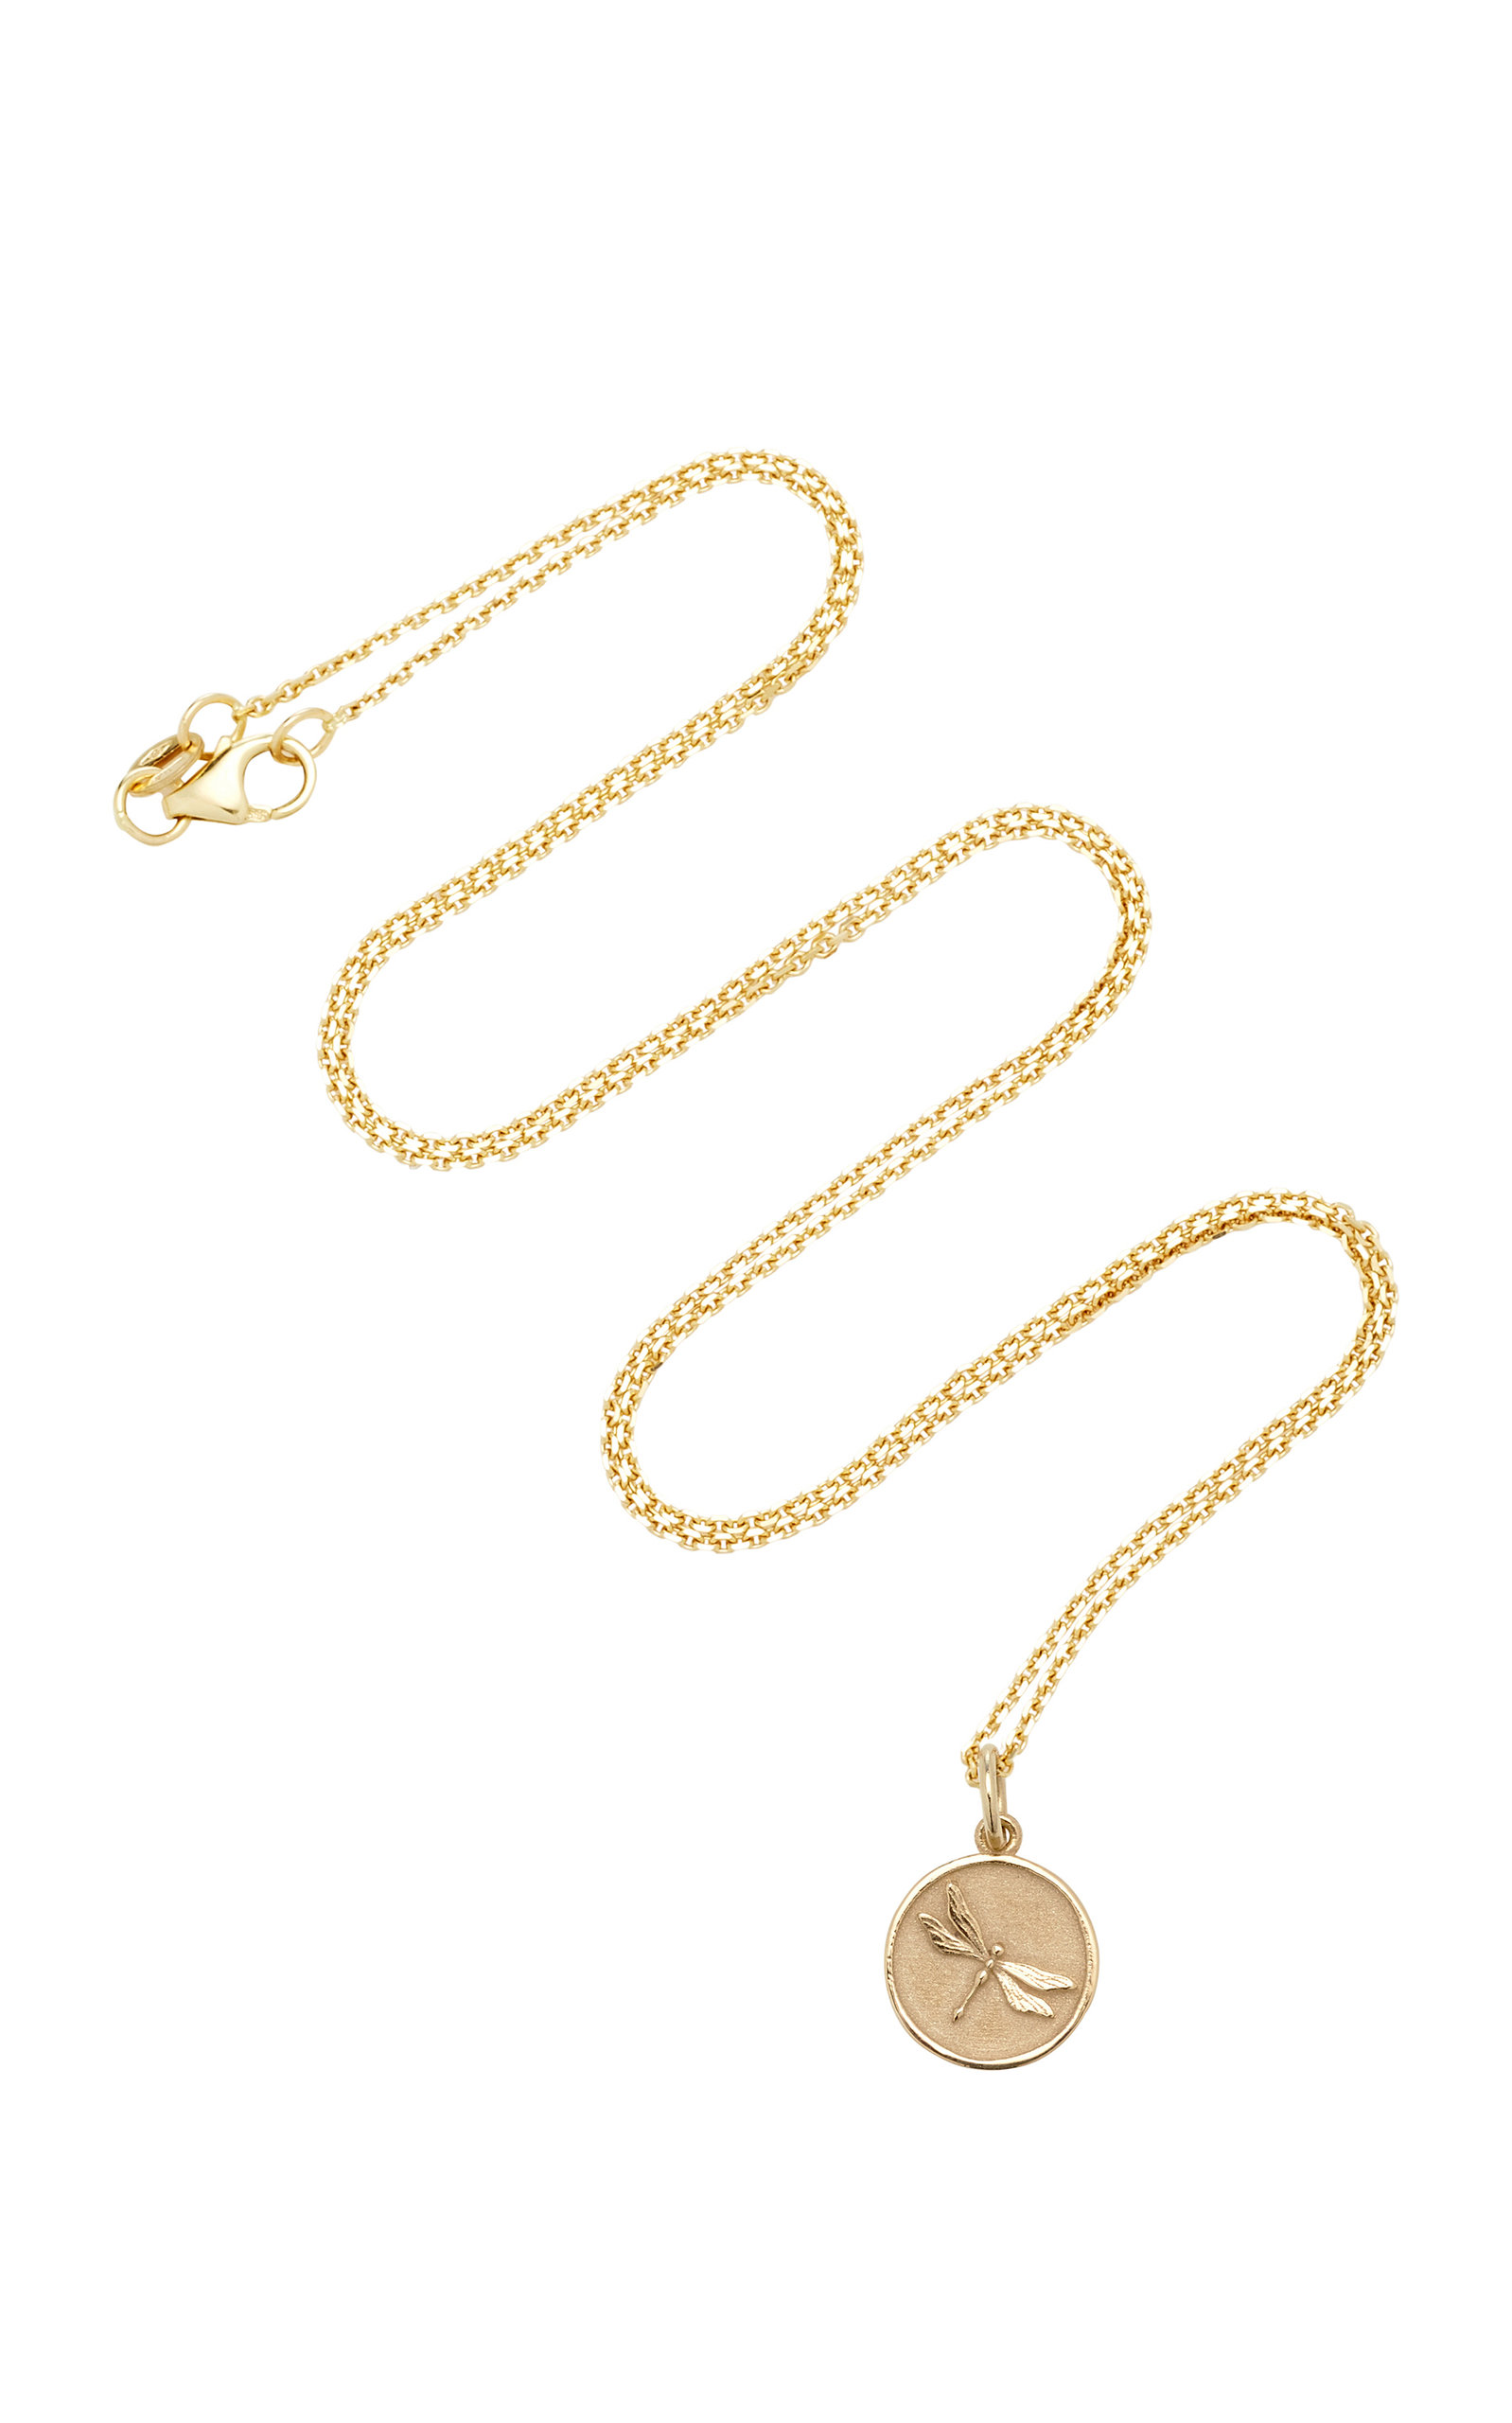 With Love Darling Dragonfly Totem 14K Gold Necklace UxISJbvf